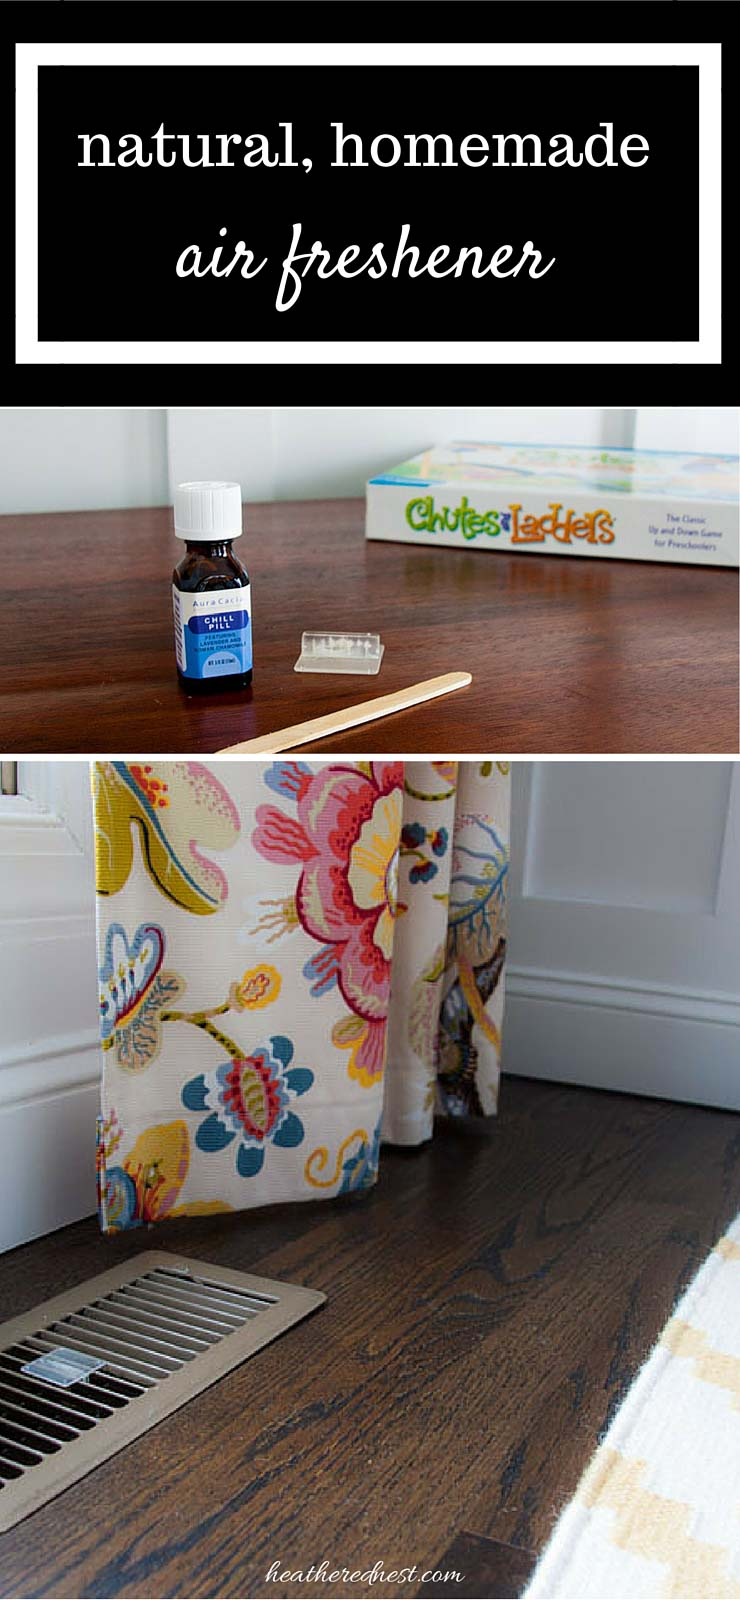 SMARTEST, easiest, cheapest ever DIY air freshener maybe ever! Make this DIY homemade air freshener in 10 seconds, using only natural oils. No more nasty chemically plug-ins! full tutorial on www.heatherednest.com